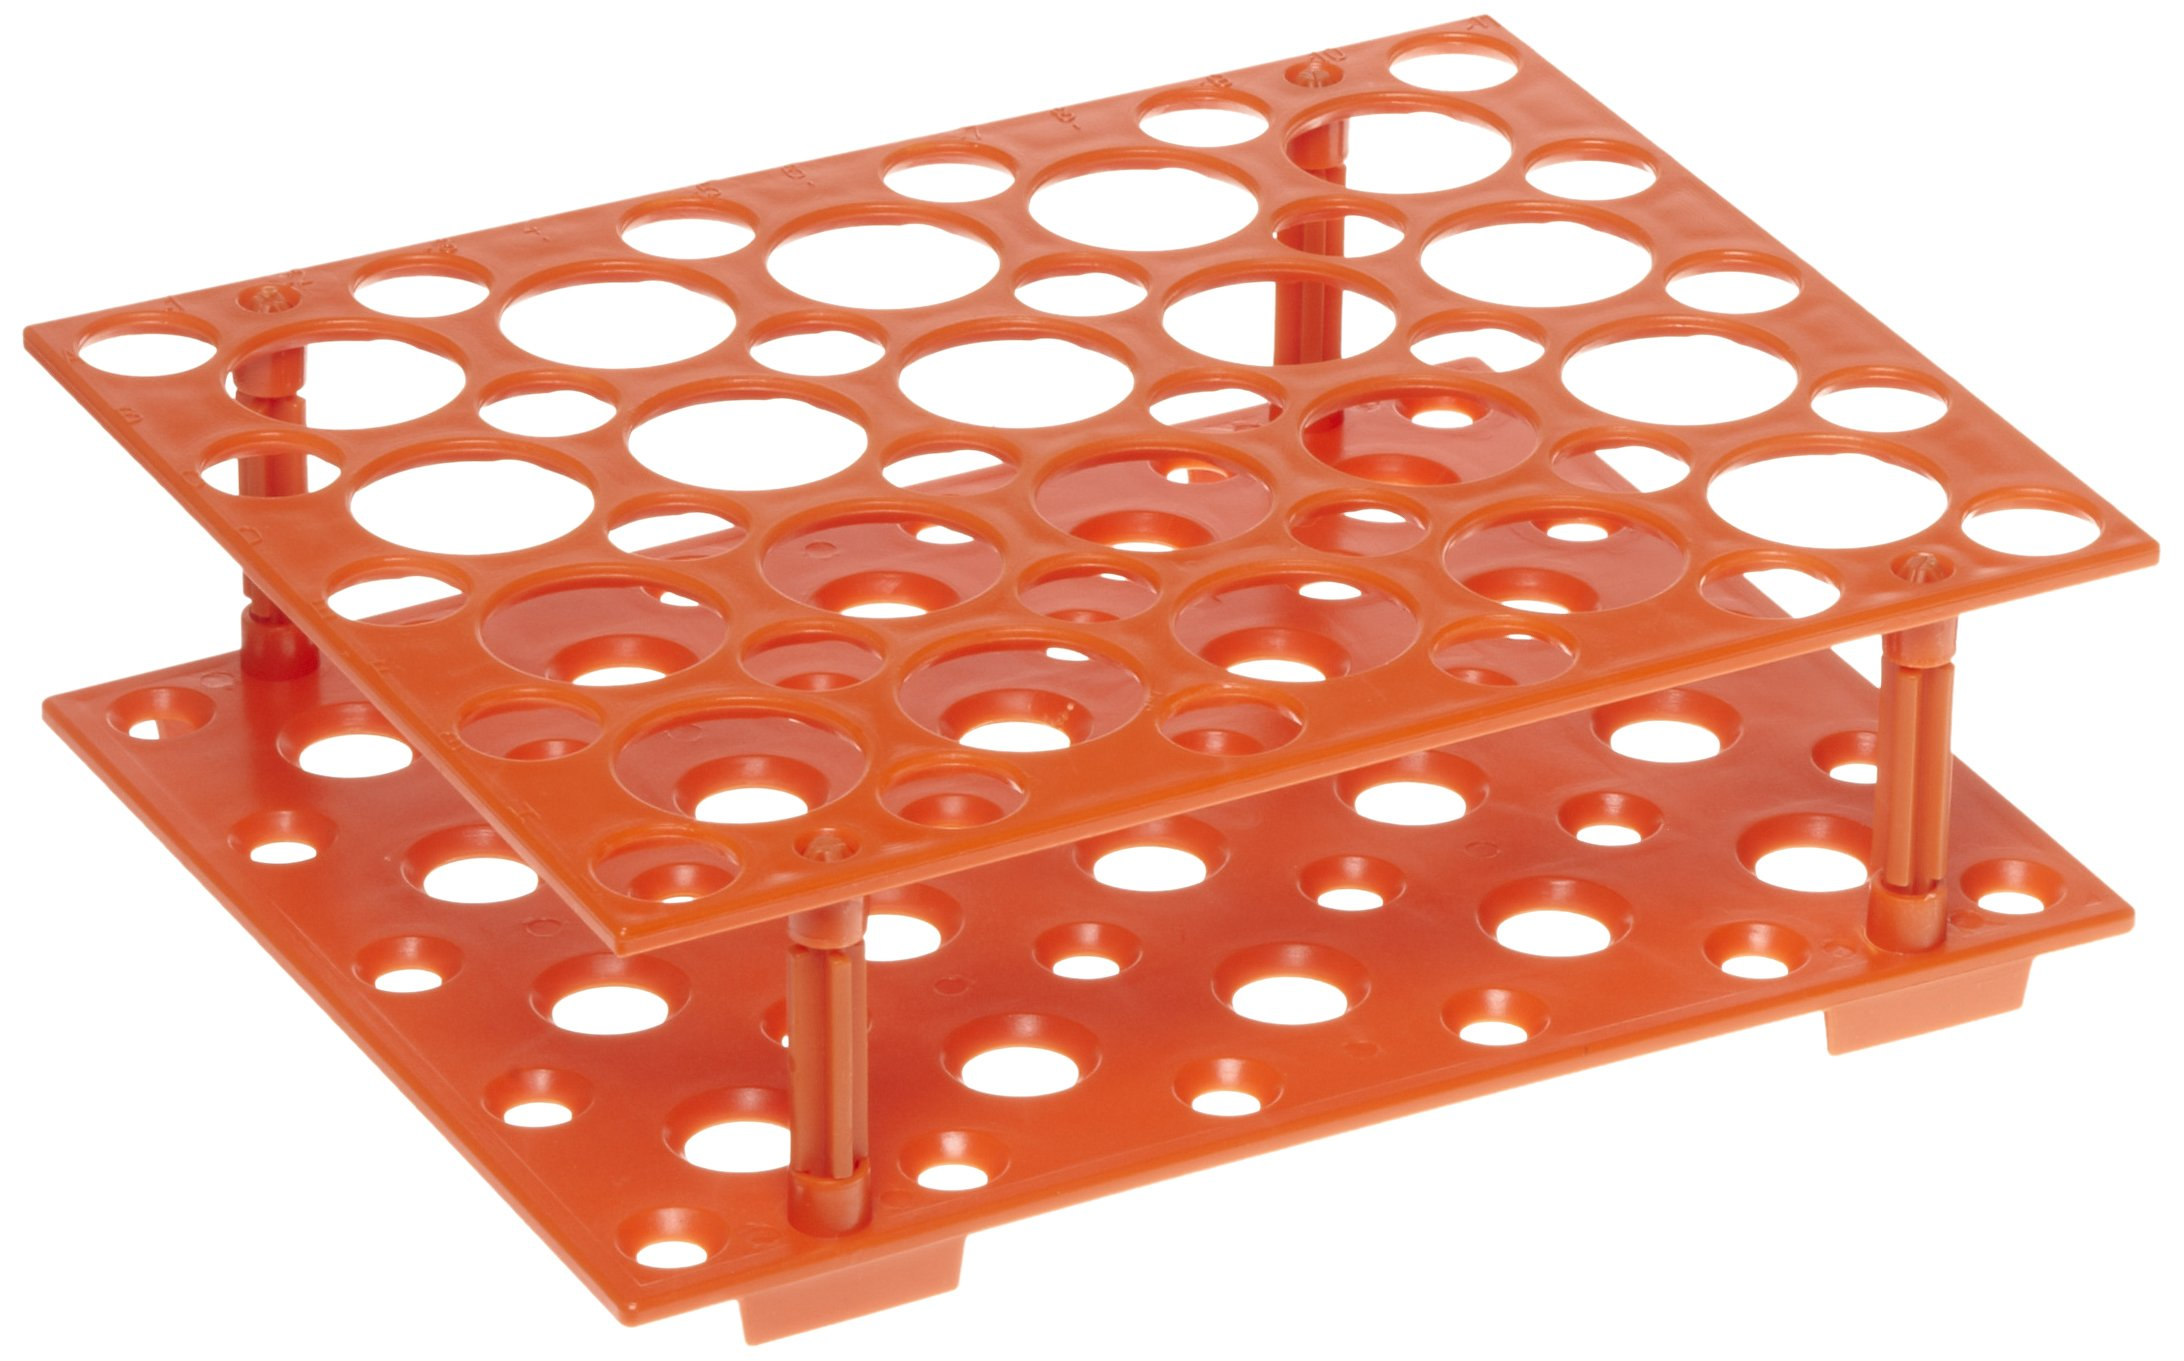 Heathrow Scientific HD24306 Orange Polypropylene Snap Together Conical Tube Rack, 207mm Length x 171mm Width x 60mm Depth